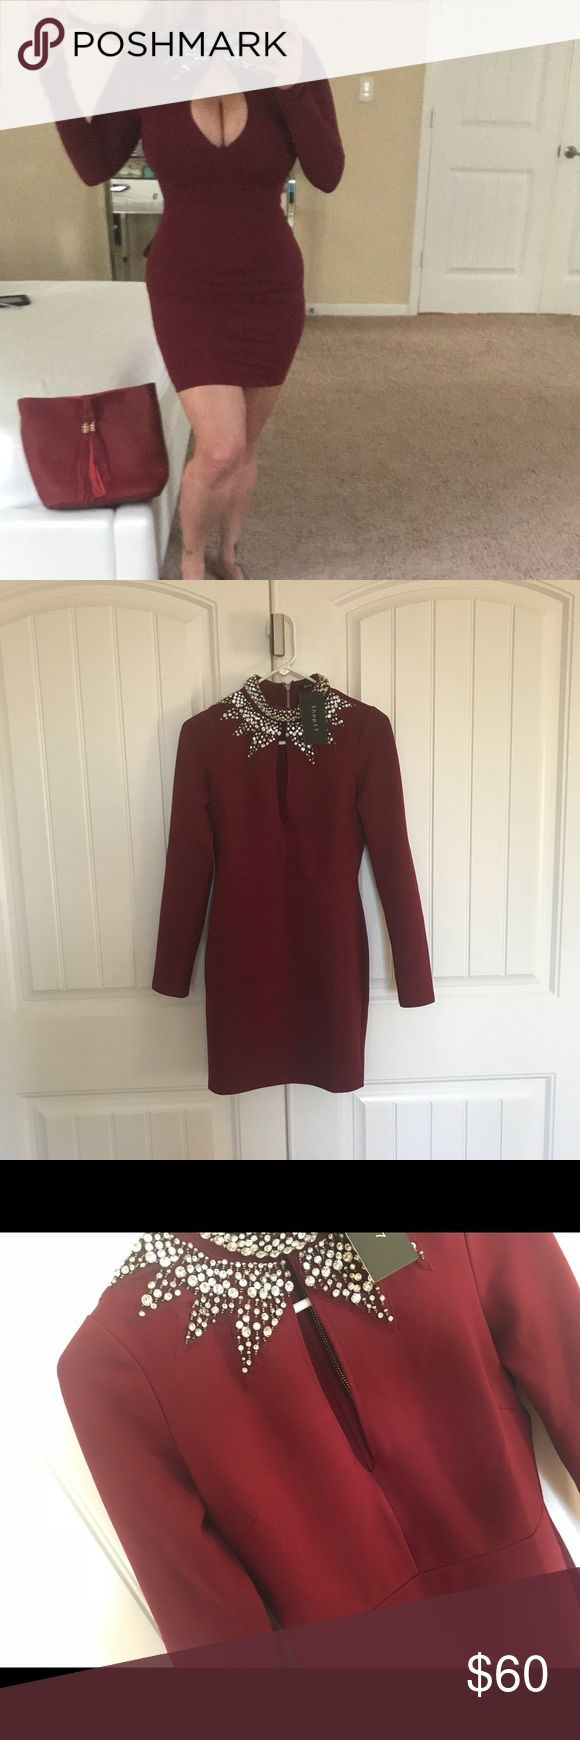 New with tags long sleeve burgundy dress Brand new with tags   Really good quality  Really stretchy and thick material  * really thick good quality spandex type   Beautiful burgundy tone with silver stones   Price is firm  Comes sealed in package  The one in the picture is a medium   1small 1medium 1large Dresses Mini